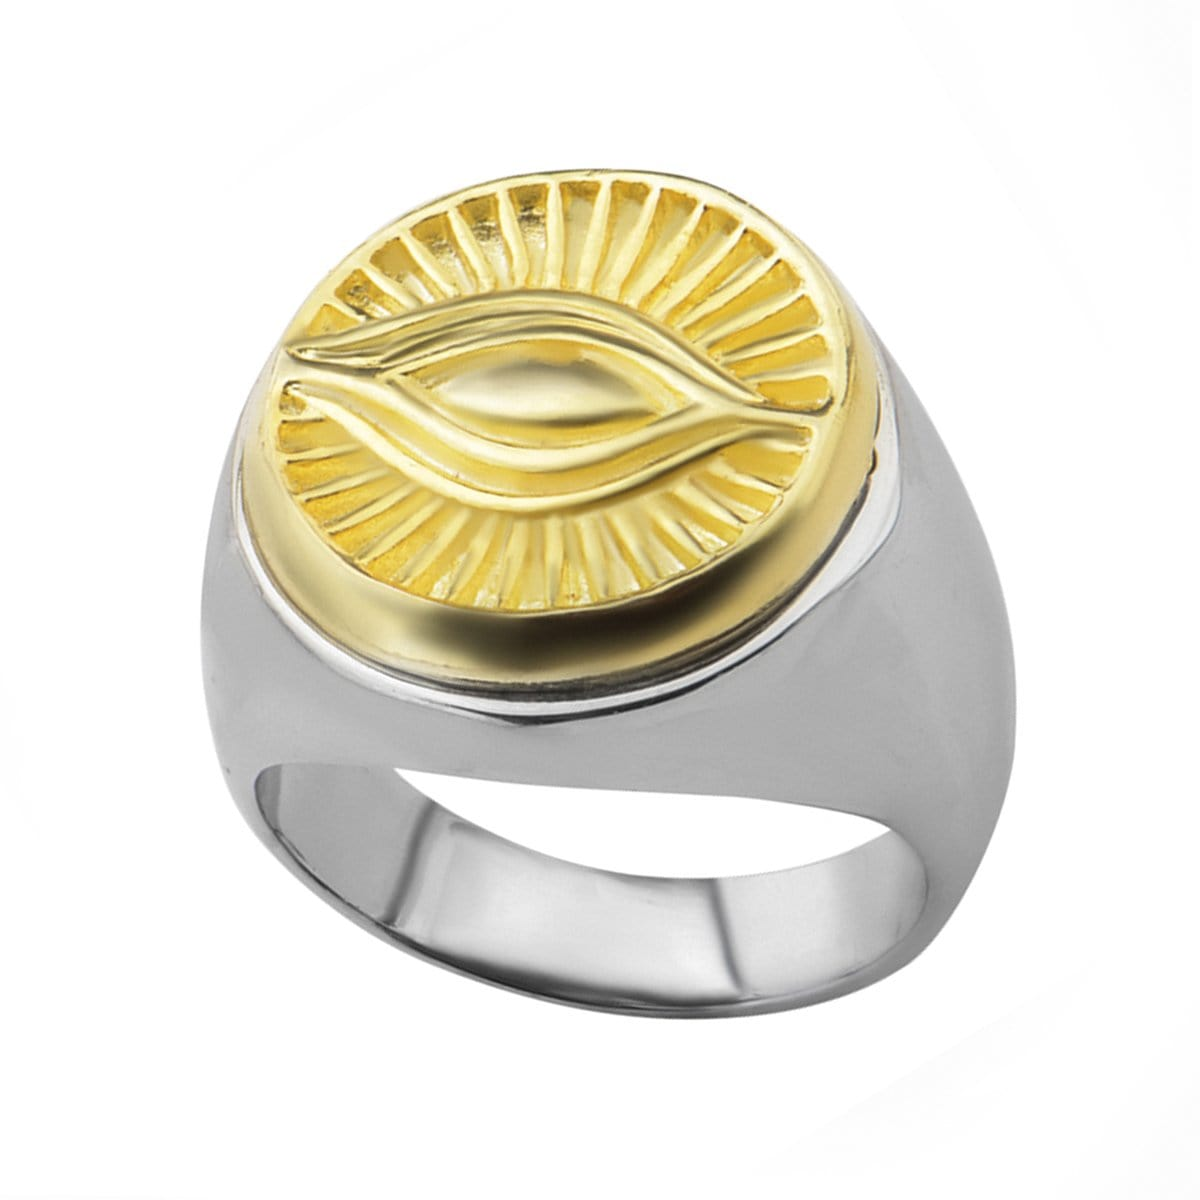 Antique Gold & Silver Stainless Steel All Seeing Eye of God Ring - Inox Jewelry India